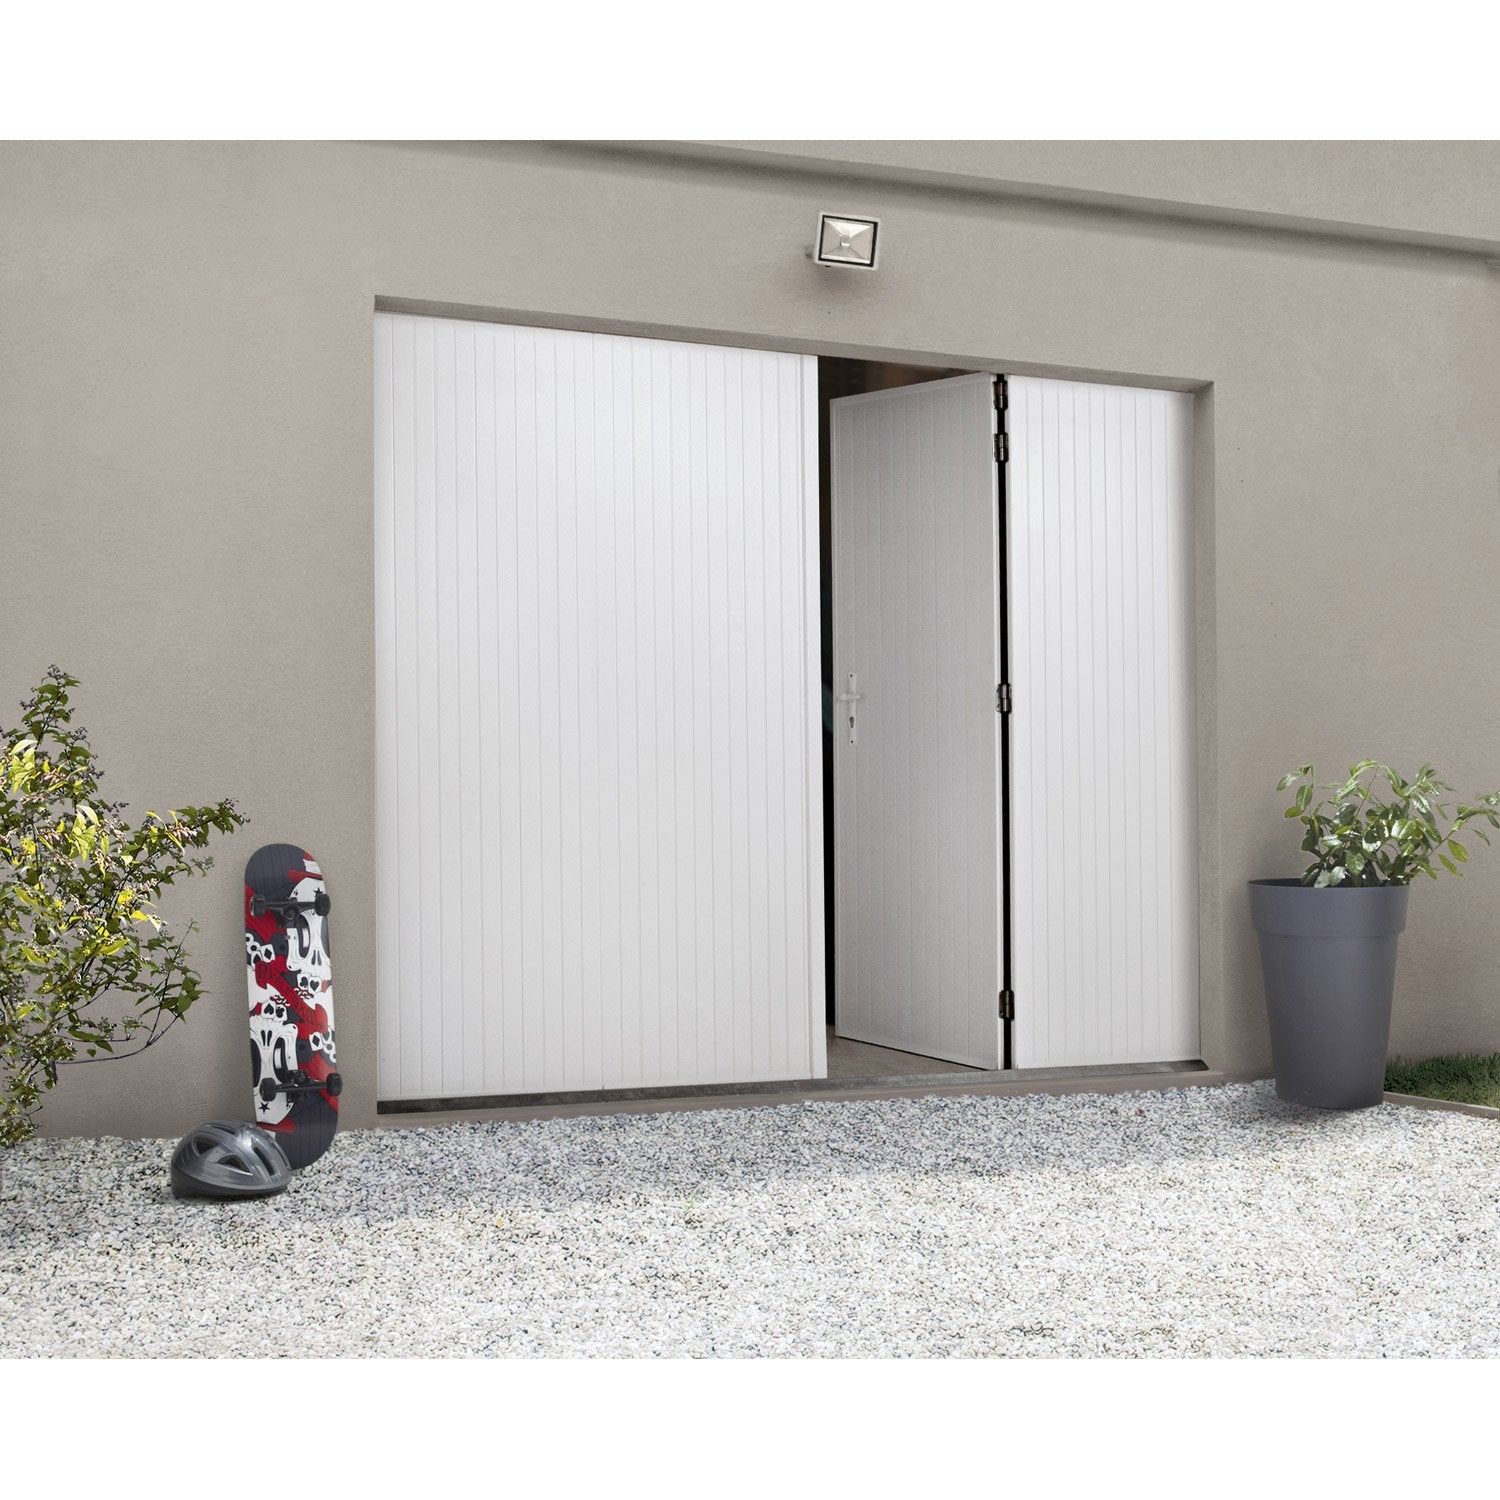 porte de garage la fran aise manuelle artens rainures verticales 200 x 240cm leroy merlin. Black Bedroom Furniture Sets. Home Design Ideas